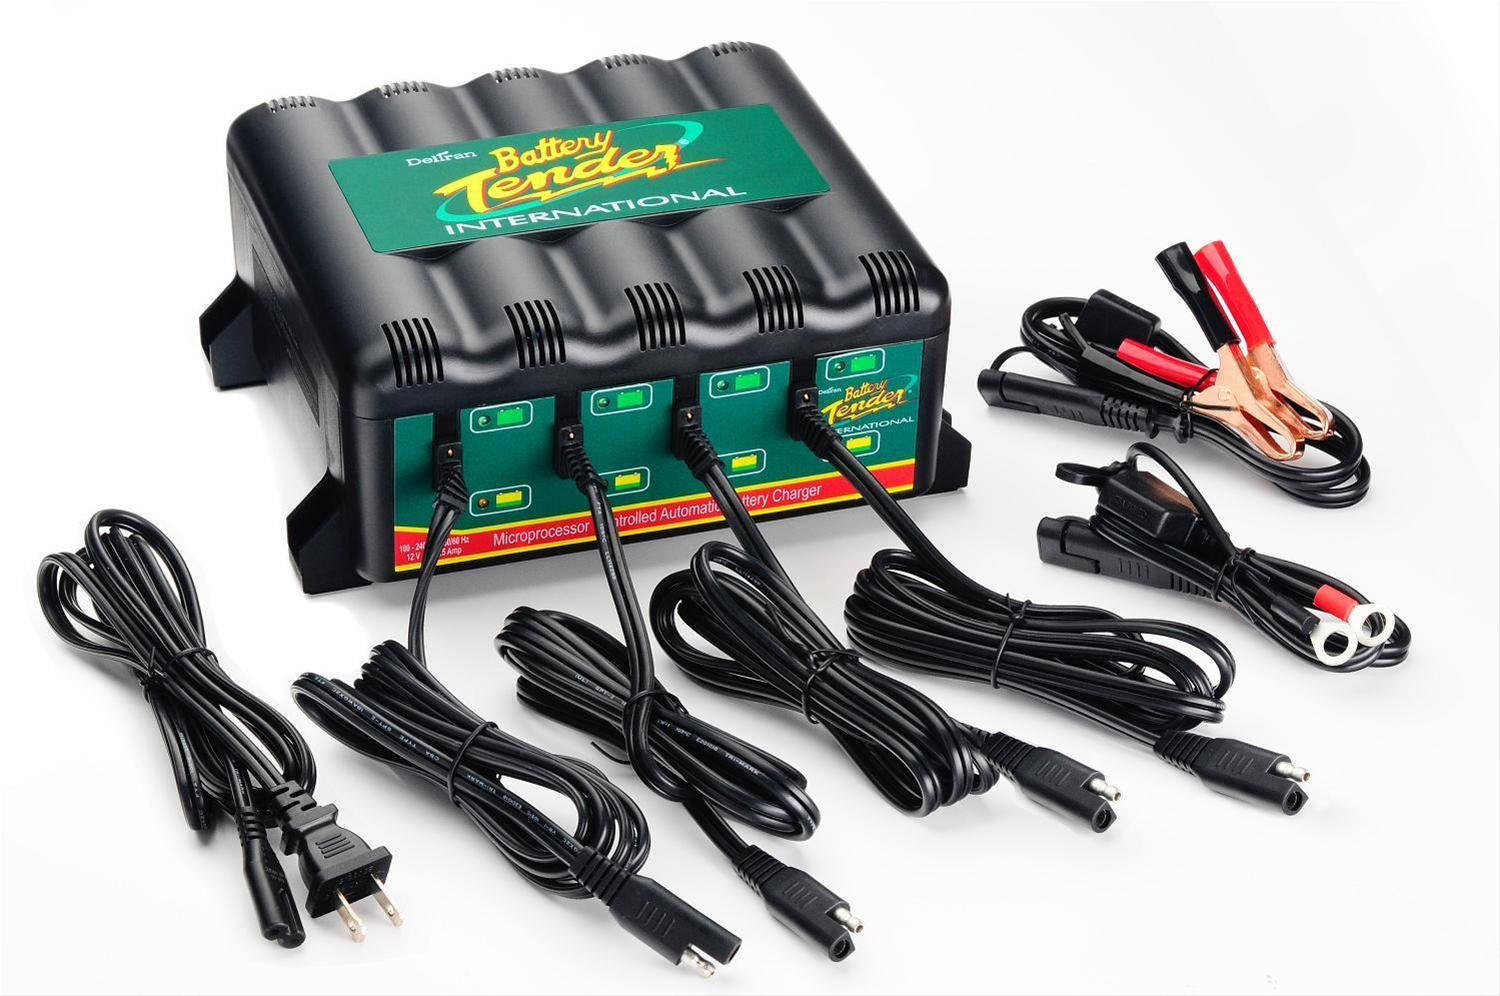 Deltran four bank battery chargers 022 0148 dl wh free shipping deltran four bank battery chargers 022 0148 dl wh free shipping on orders over 99 at summit racing sciox Choice Image